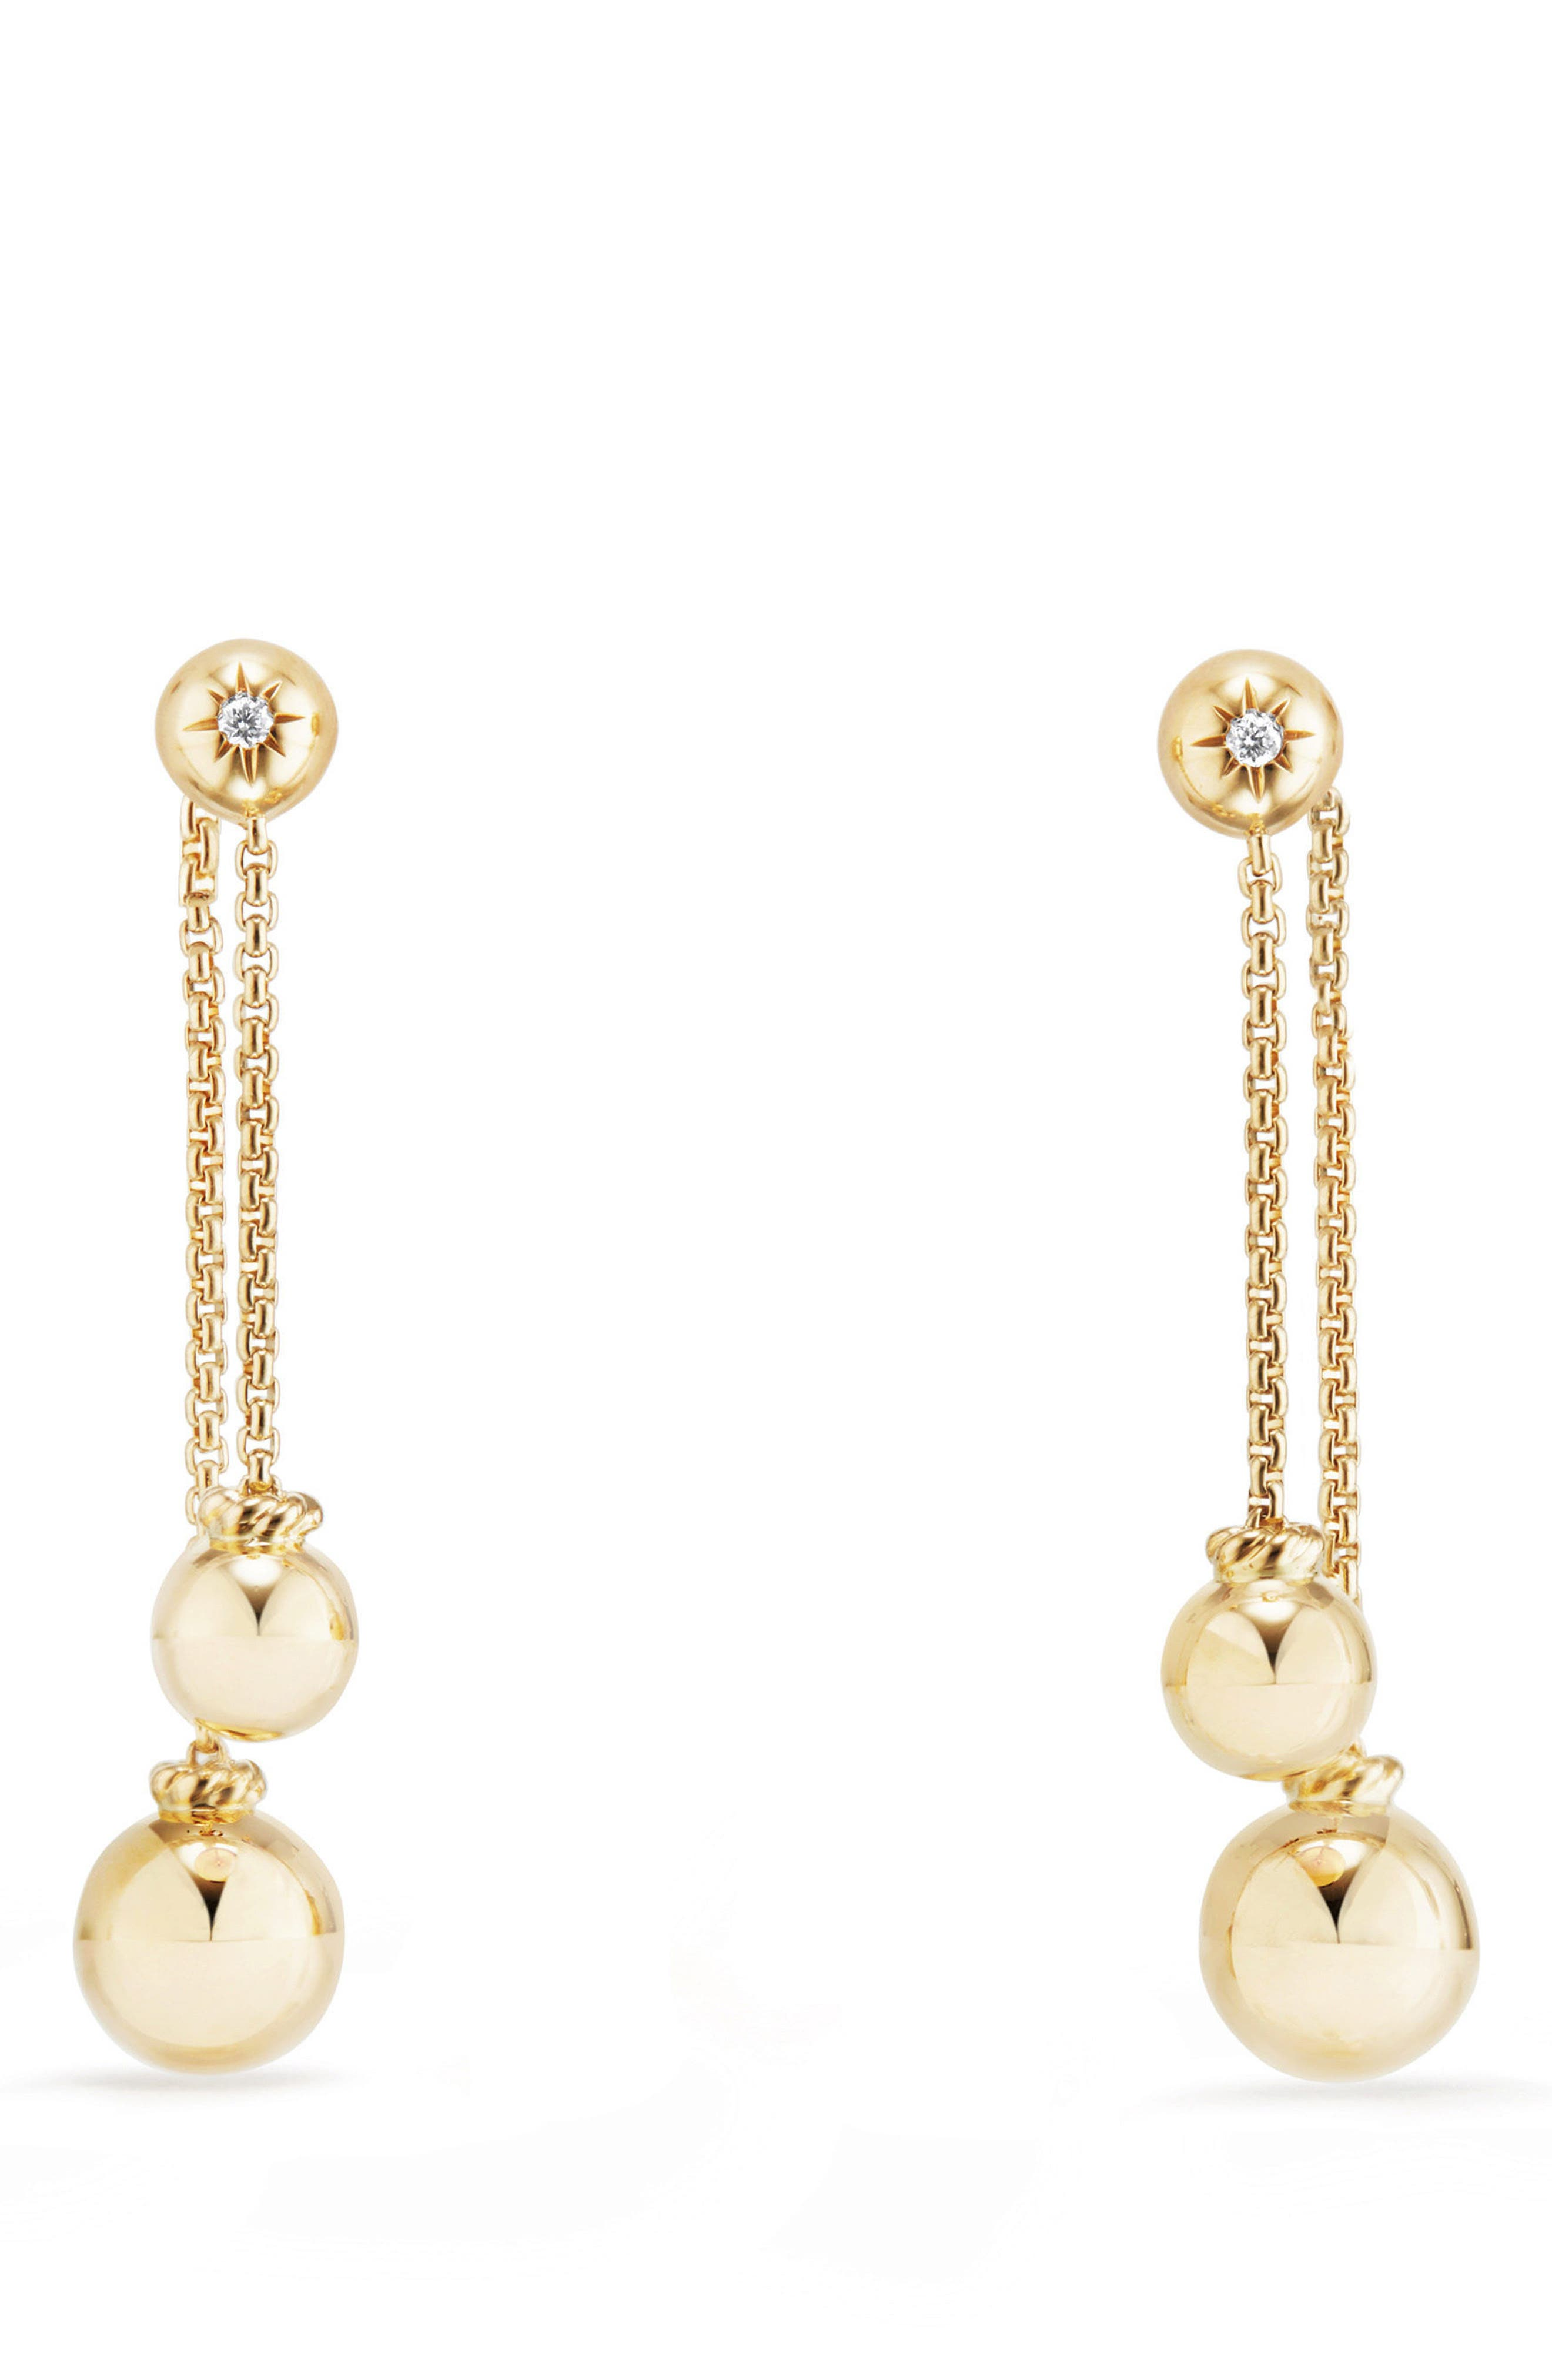 Solari Chain Drop Earrings with Diamonds in 18K Gold,                         Main,                         color, 710